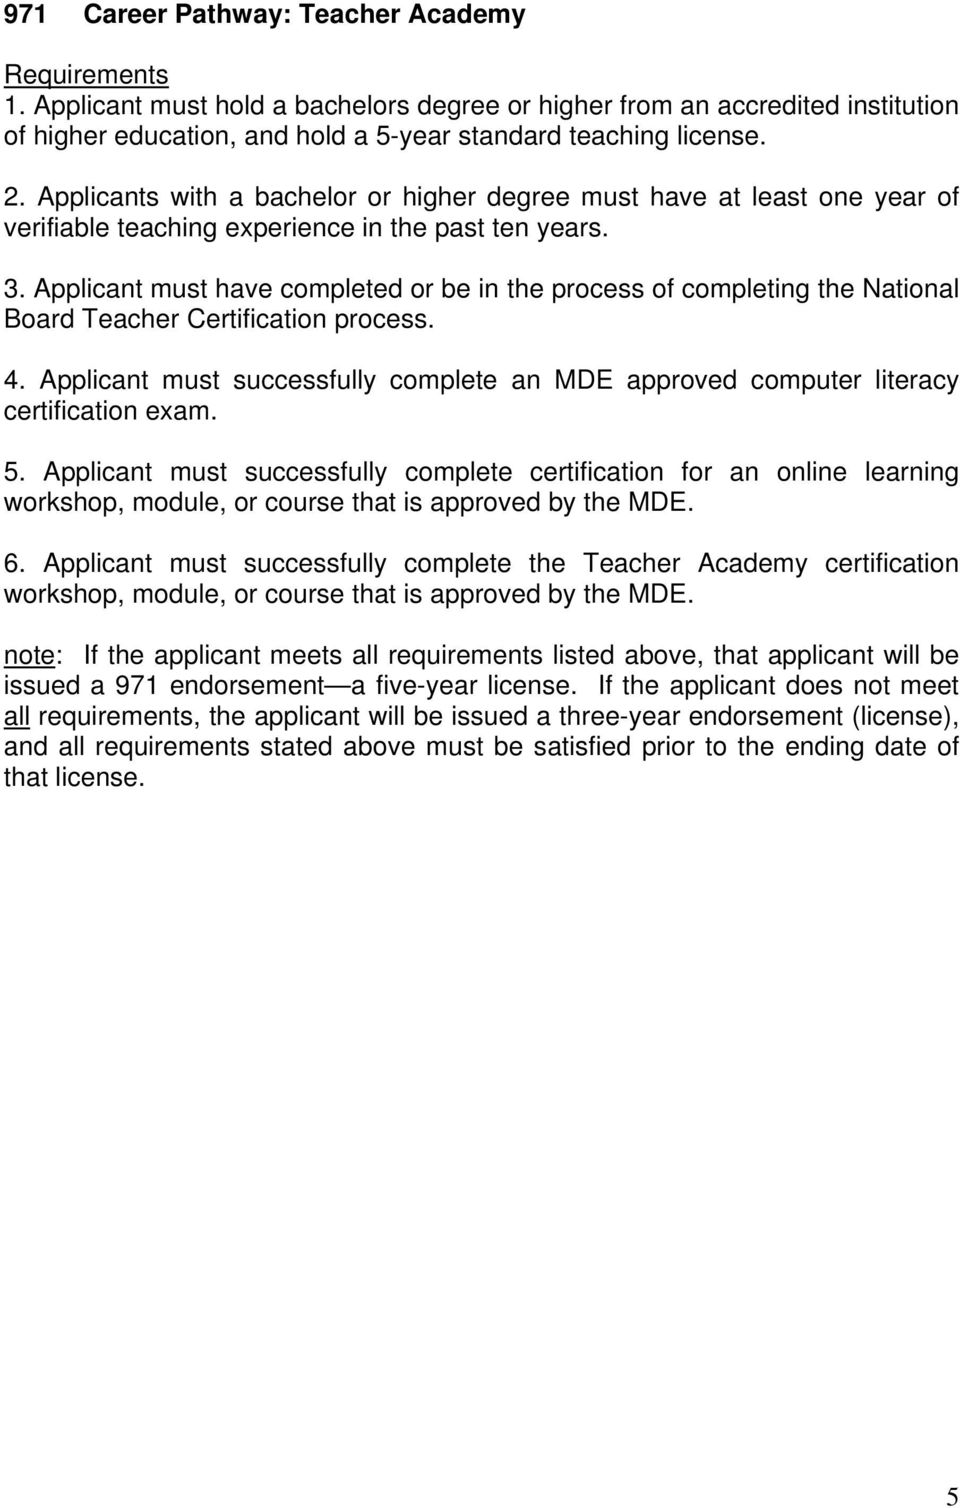 Applicant must have completed or be in the process of completing the National Board Teacher Certification process. 4.